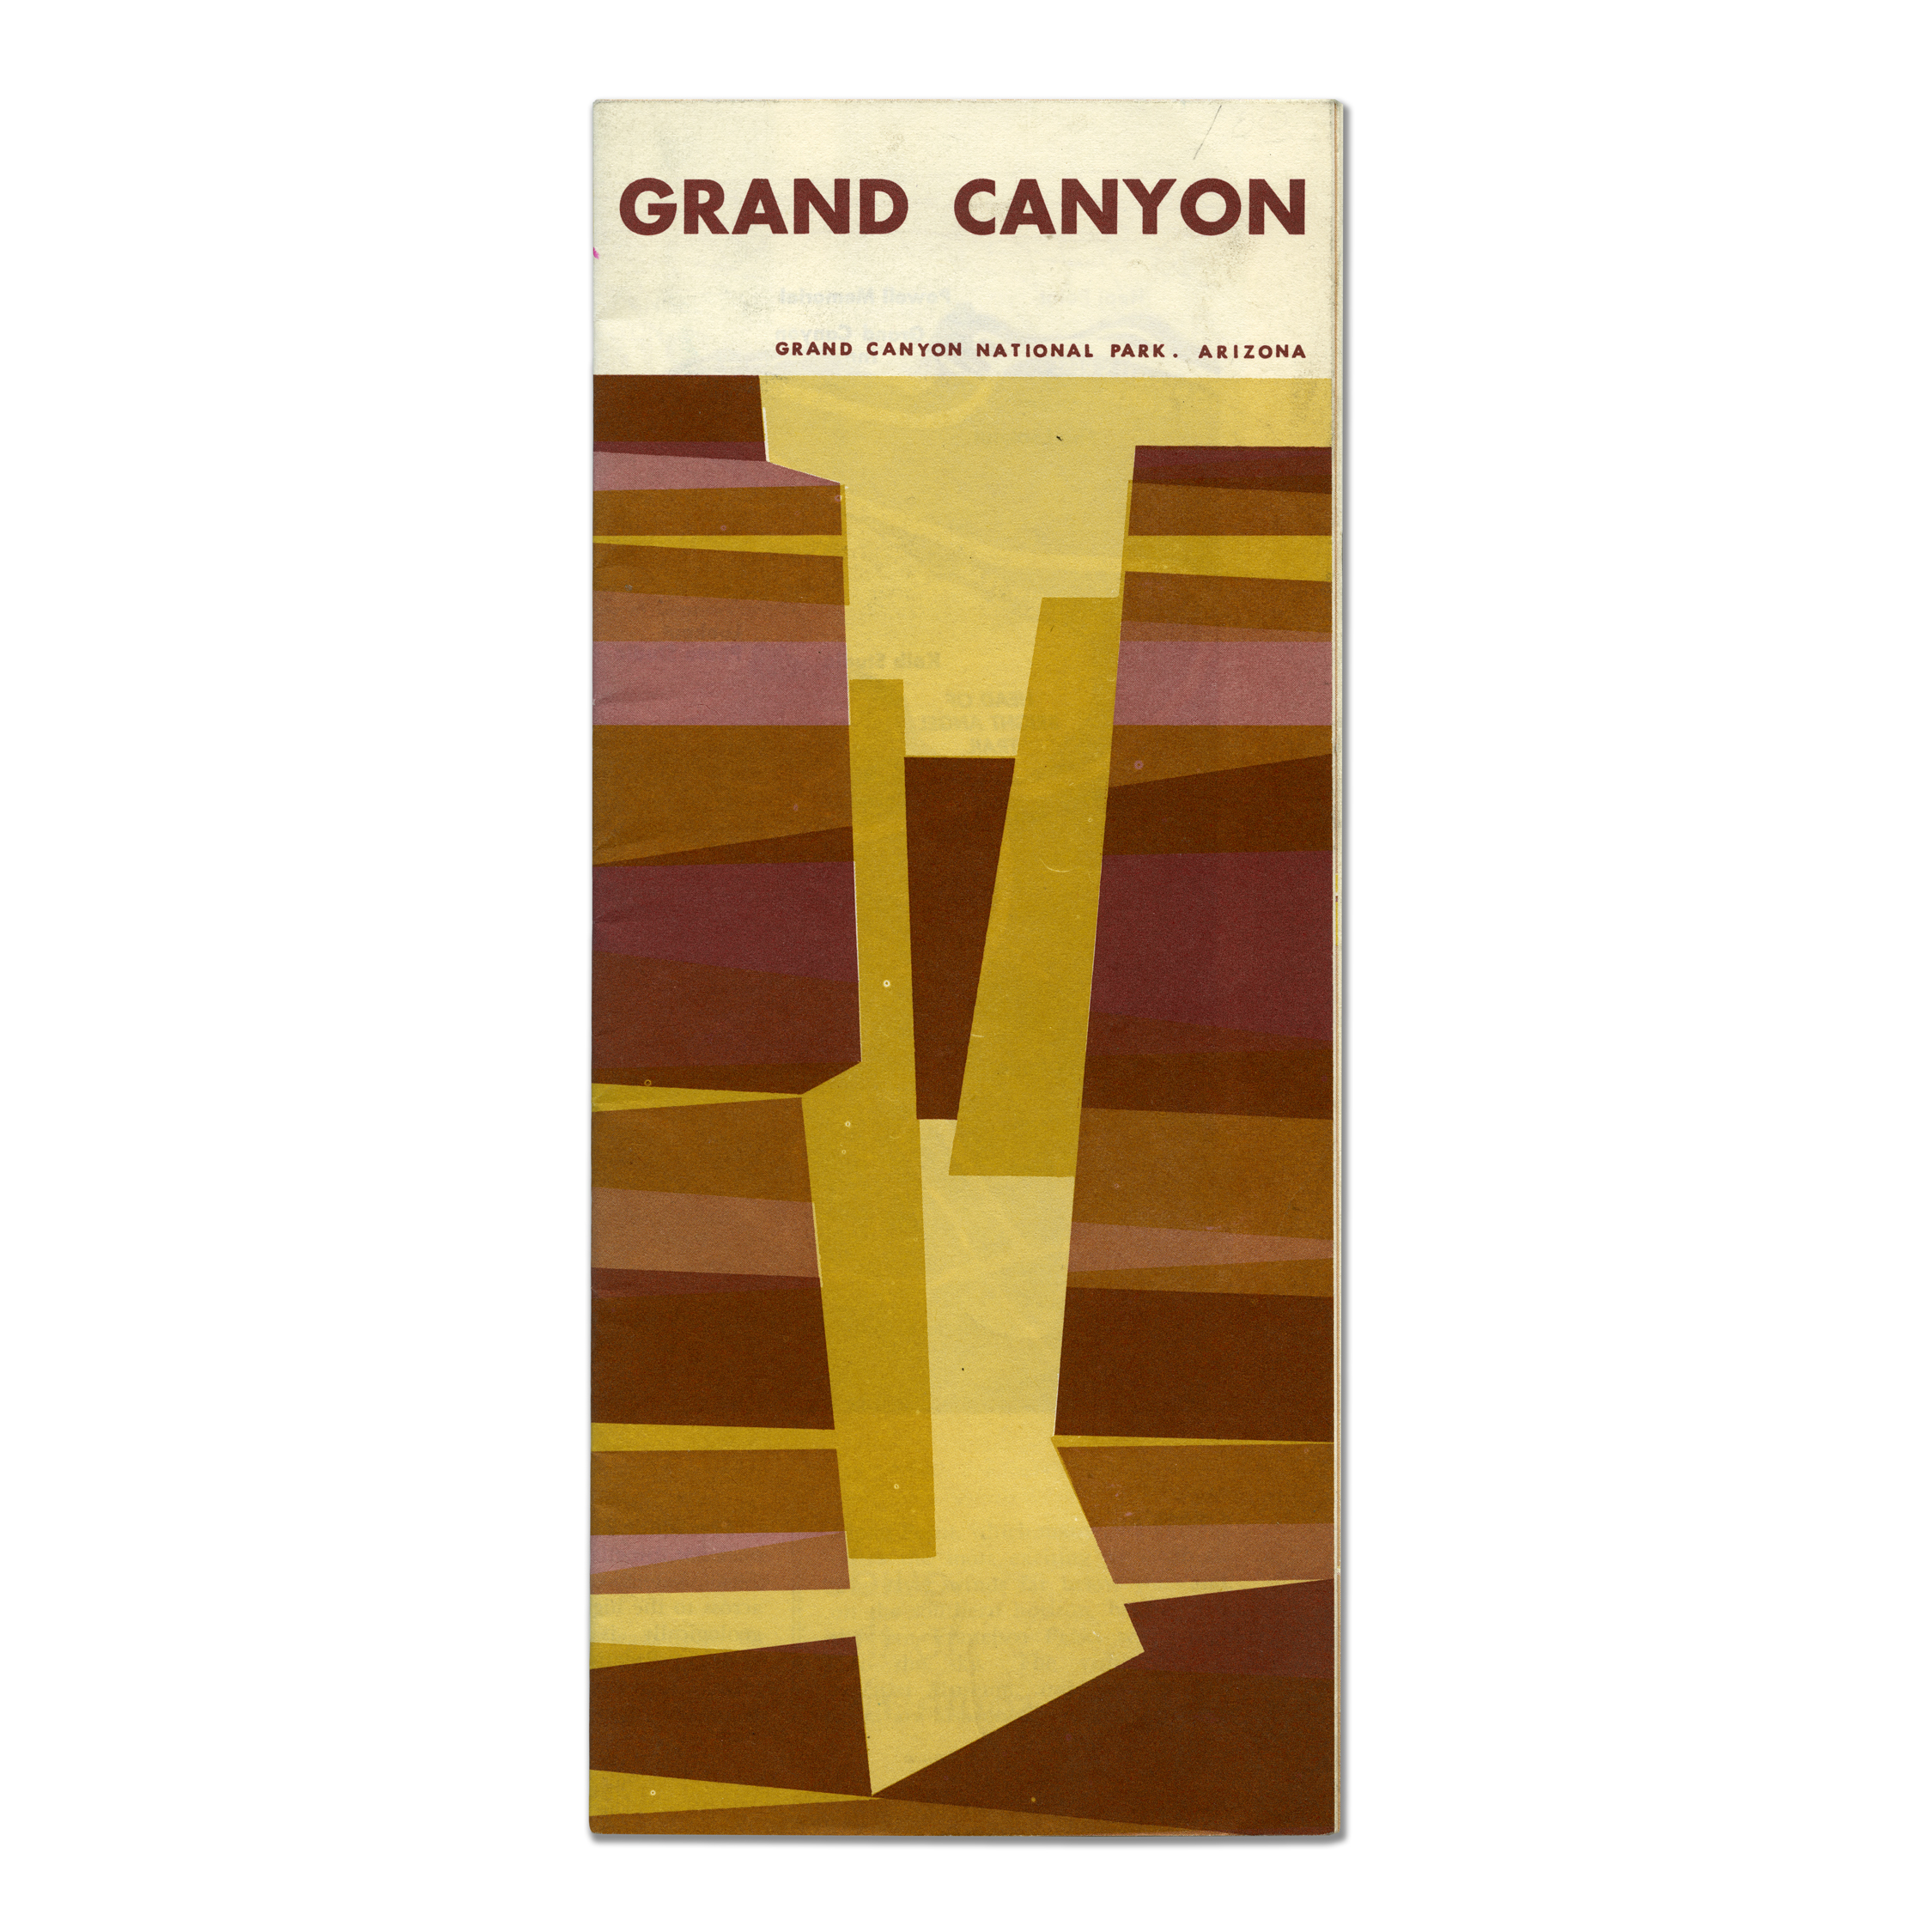 1965_grand_canyon_national_park_brochure.jpg